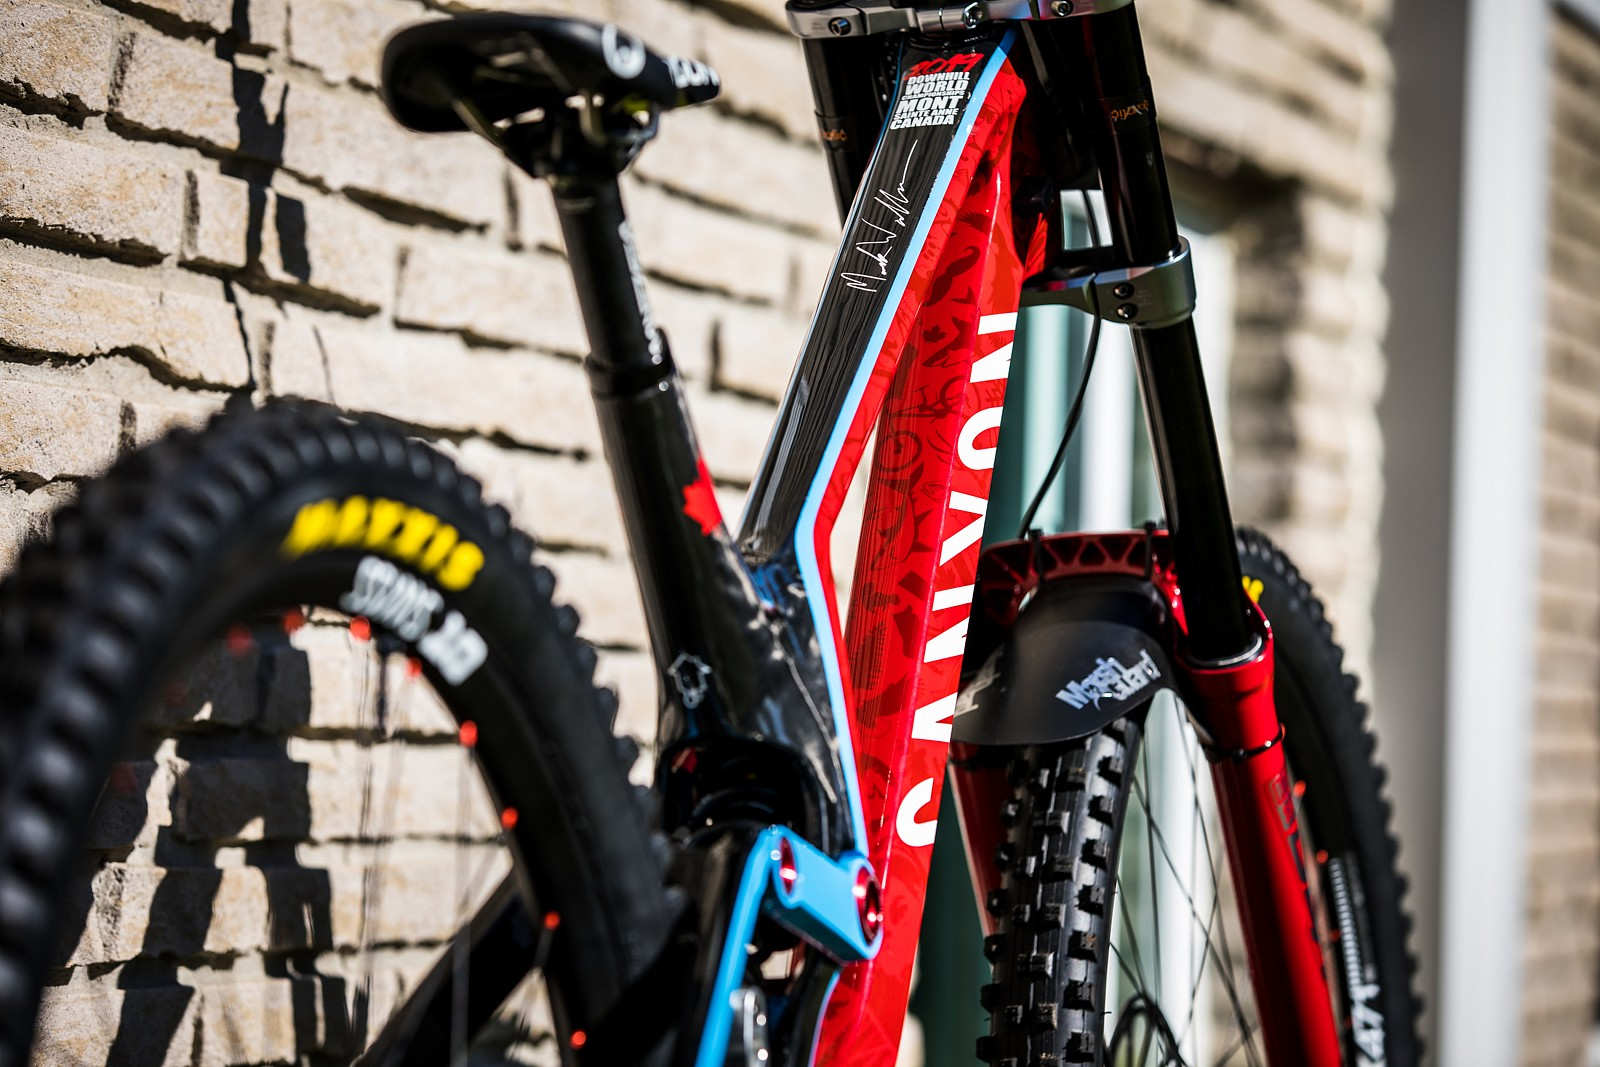 Mark Wallace's Canyon Sender for World Championships - Mark Wallace's Canyon Sender for World Championships - Mountain Biking Pictures - Vital MTB